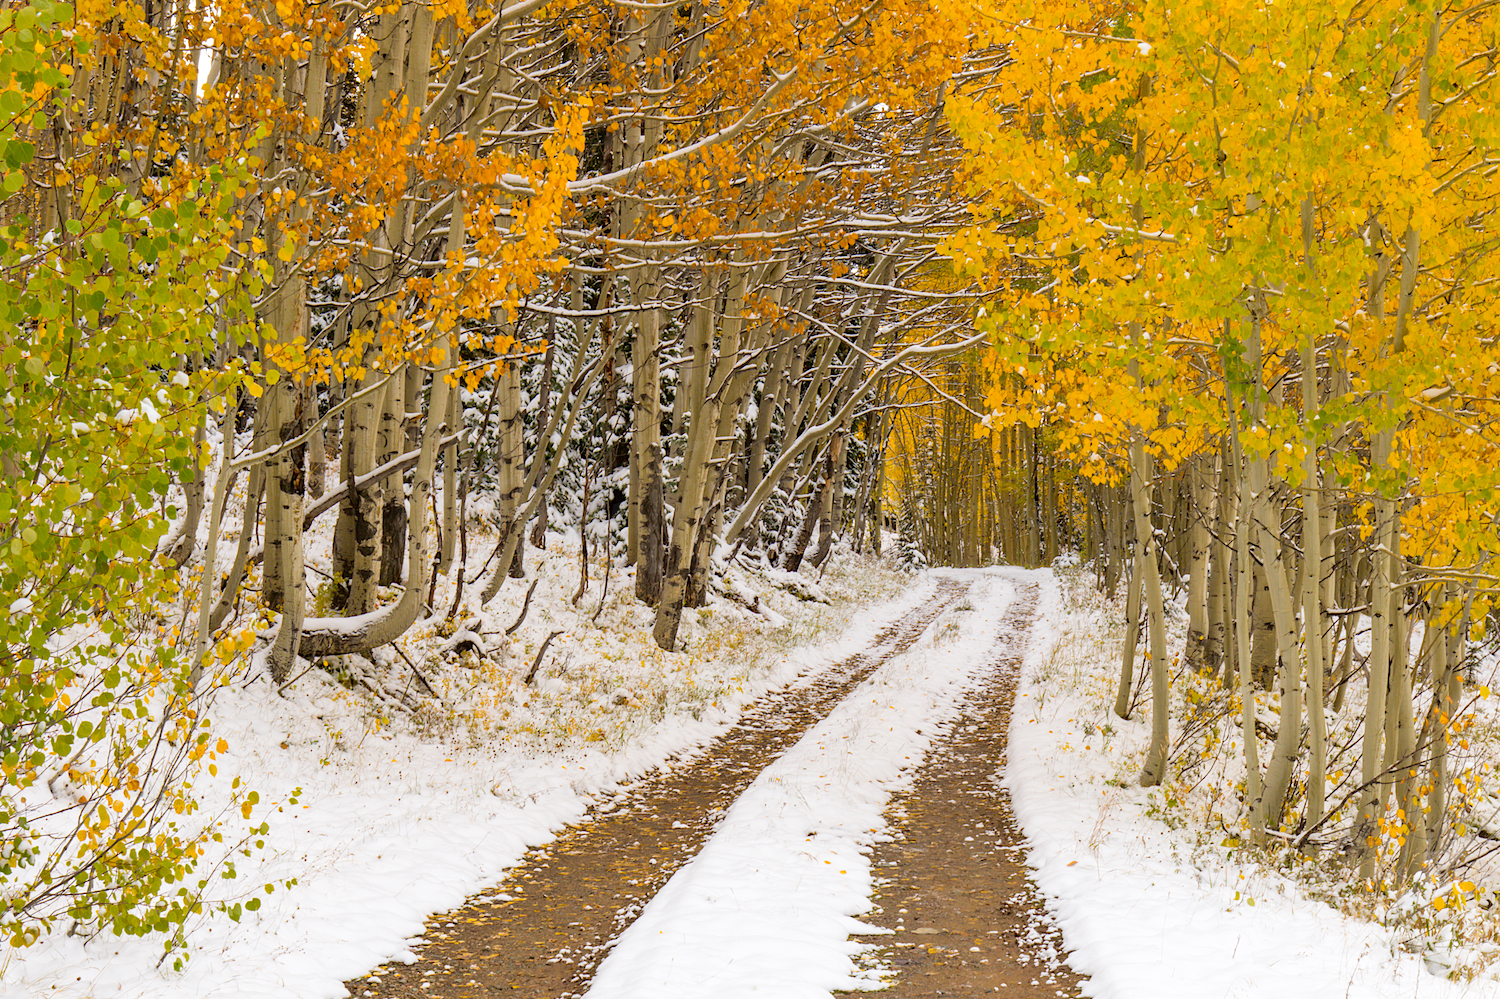 Snowy Fall Day, Image # 0818